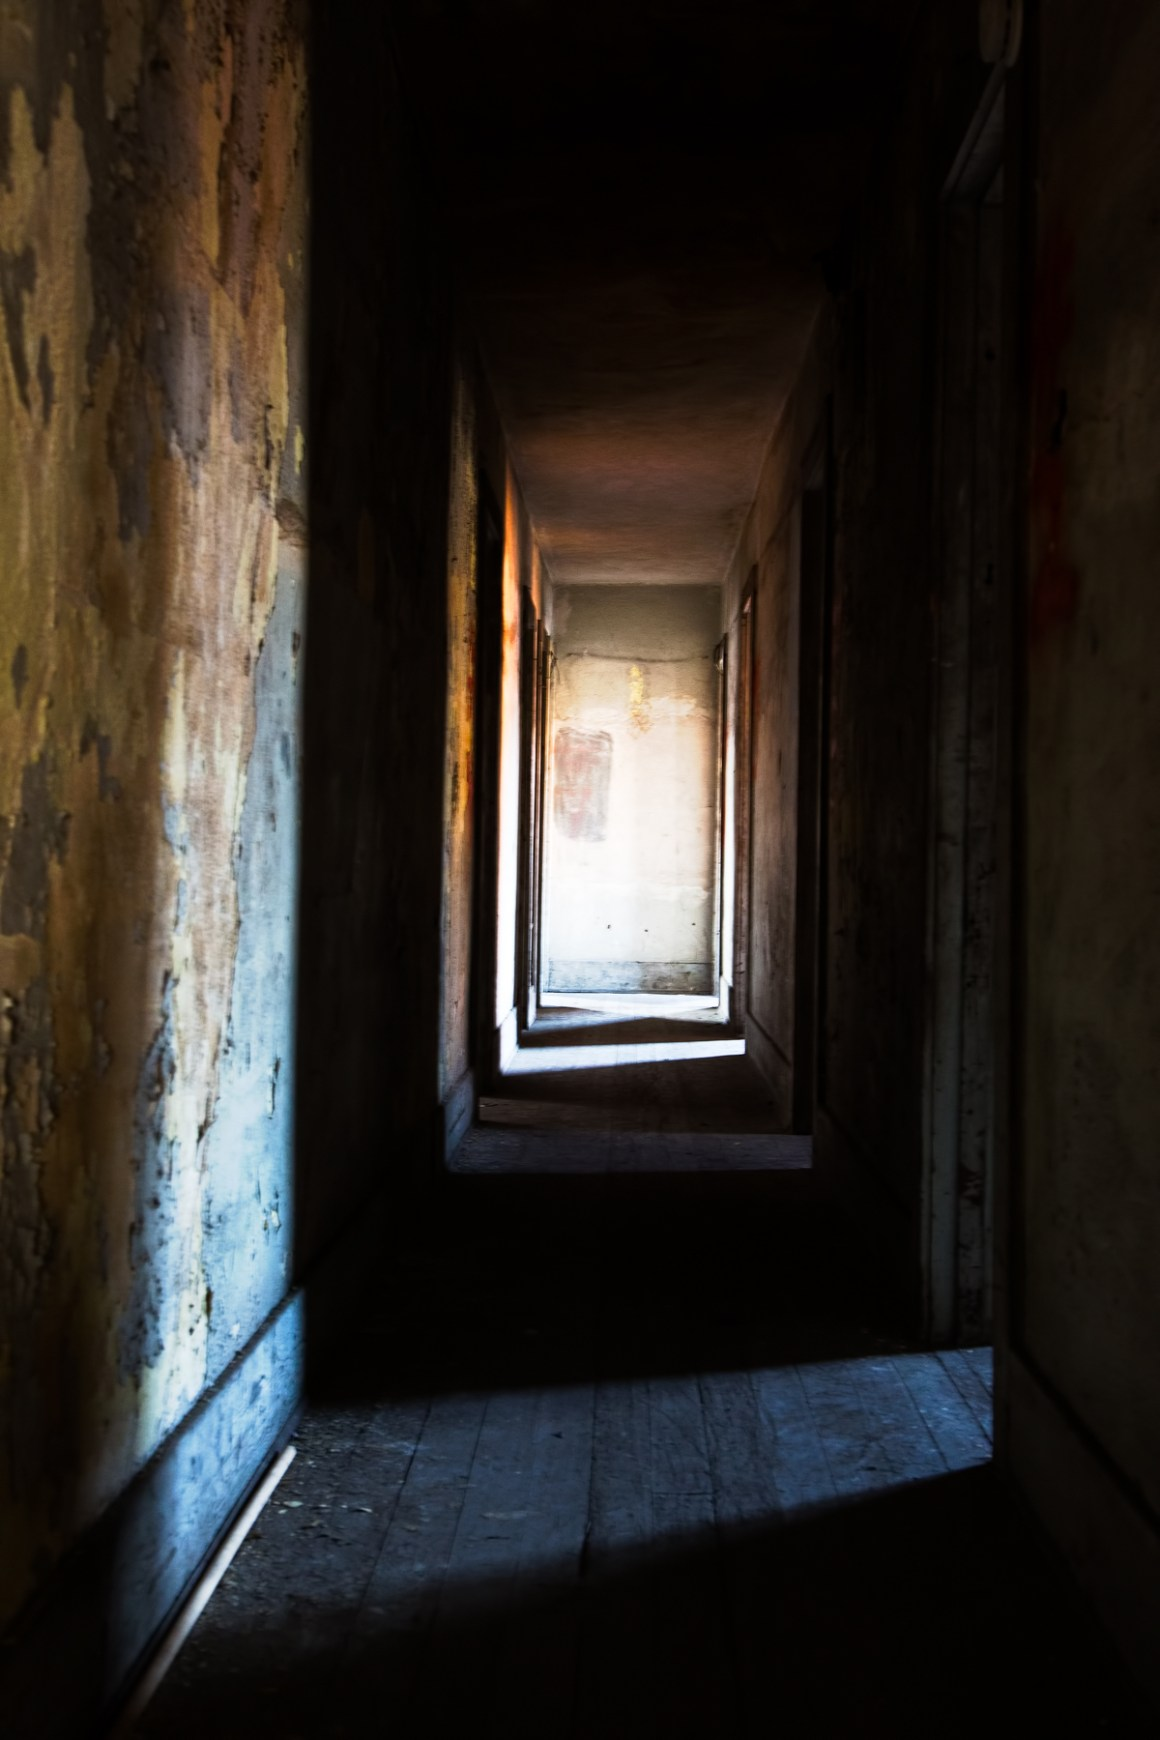 Hallway old building urban decay moody lighting muted colors photograph